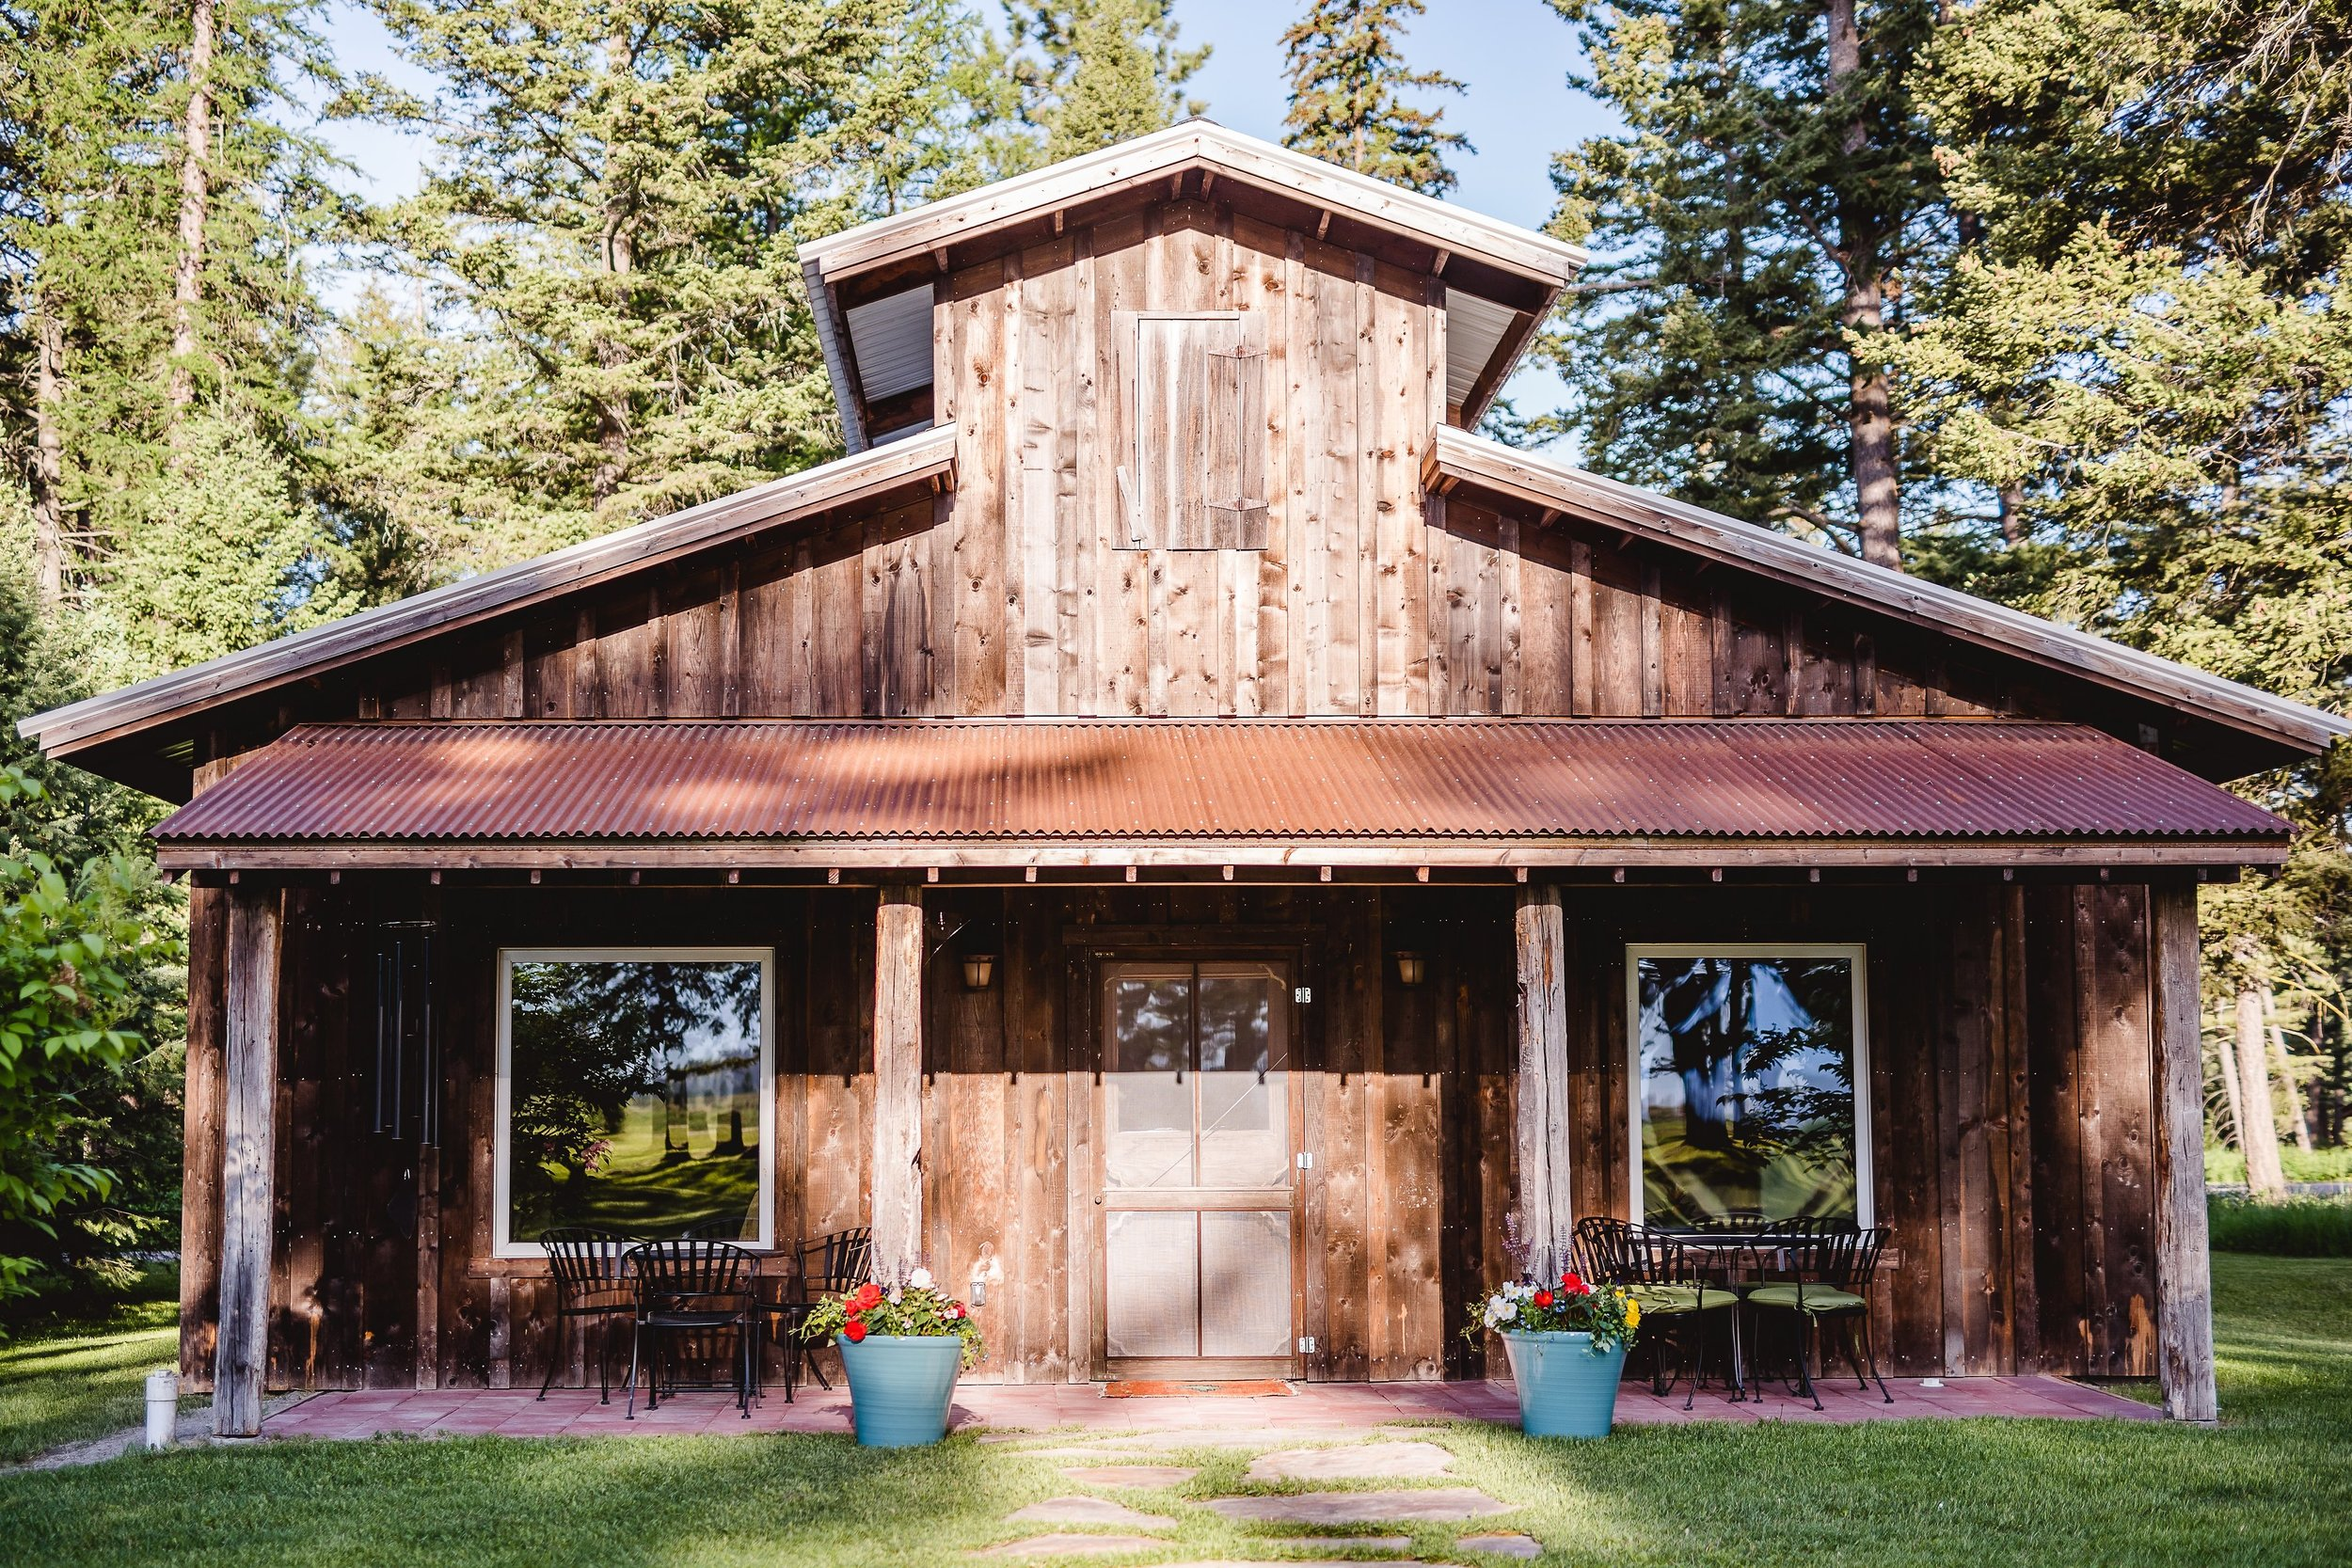 The Bunkhouse - This unique, stable-like building has seven bedrooms, four bathrooms and three lounge areas surrounding the central hall with its clerestory ceiling. The rooms are outfitted with a queen, twin or bunkbeds and covered with organic cotton sheets and thick Pendleton blankets. The bunkhouse is just steps away from the dining and recreation facilities.